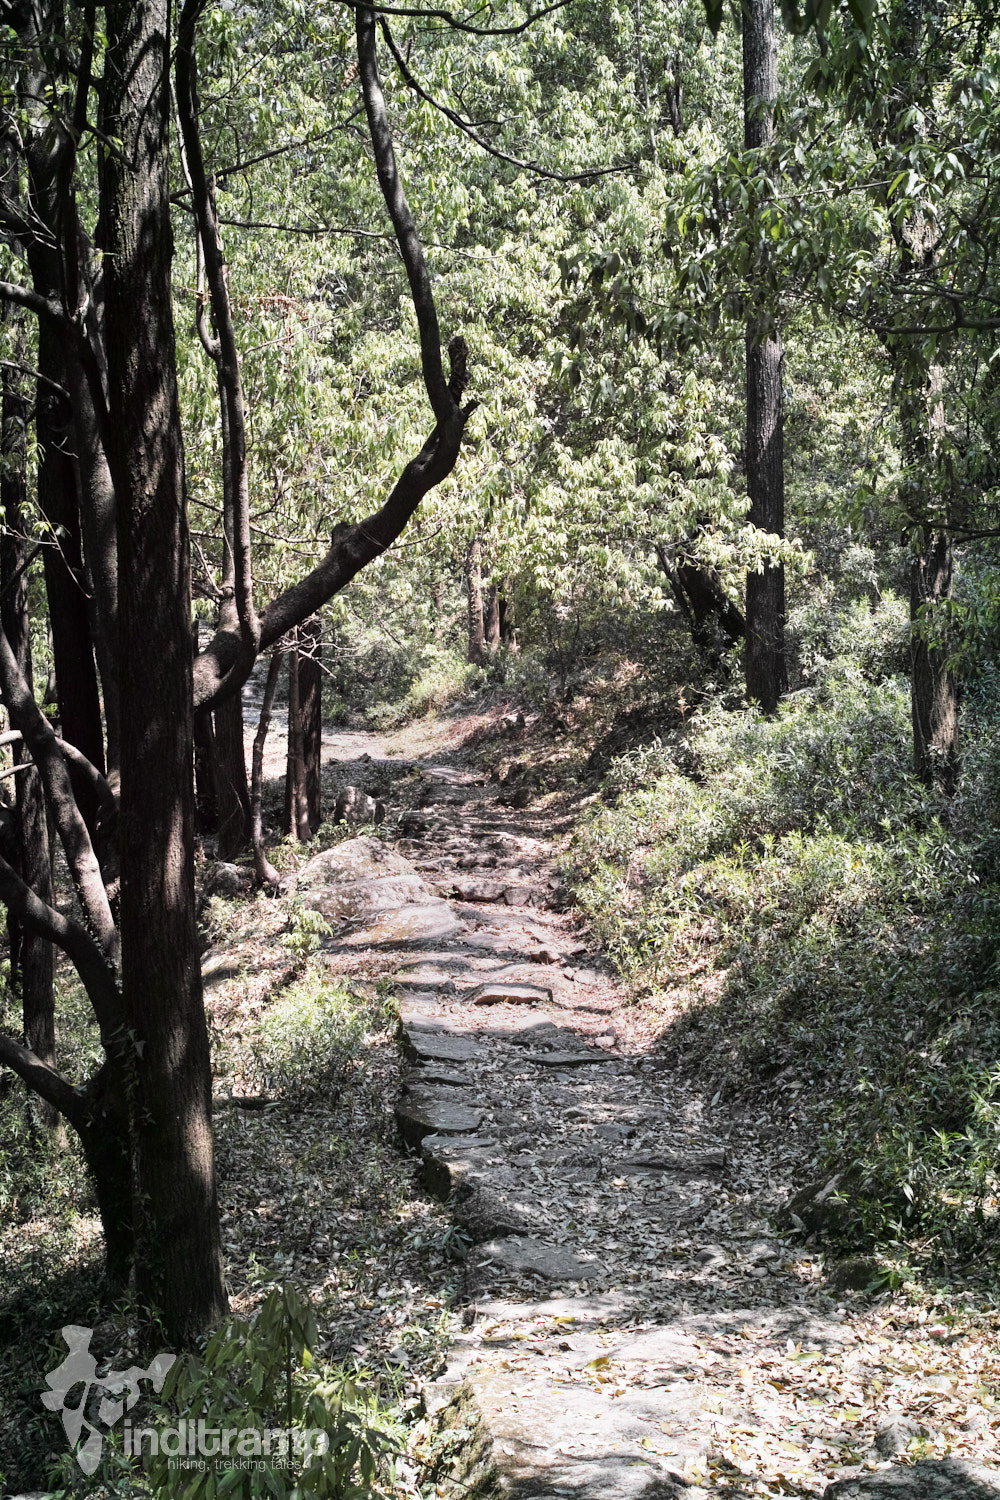 A paved stone path that marks the start of Kareri Lake trek